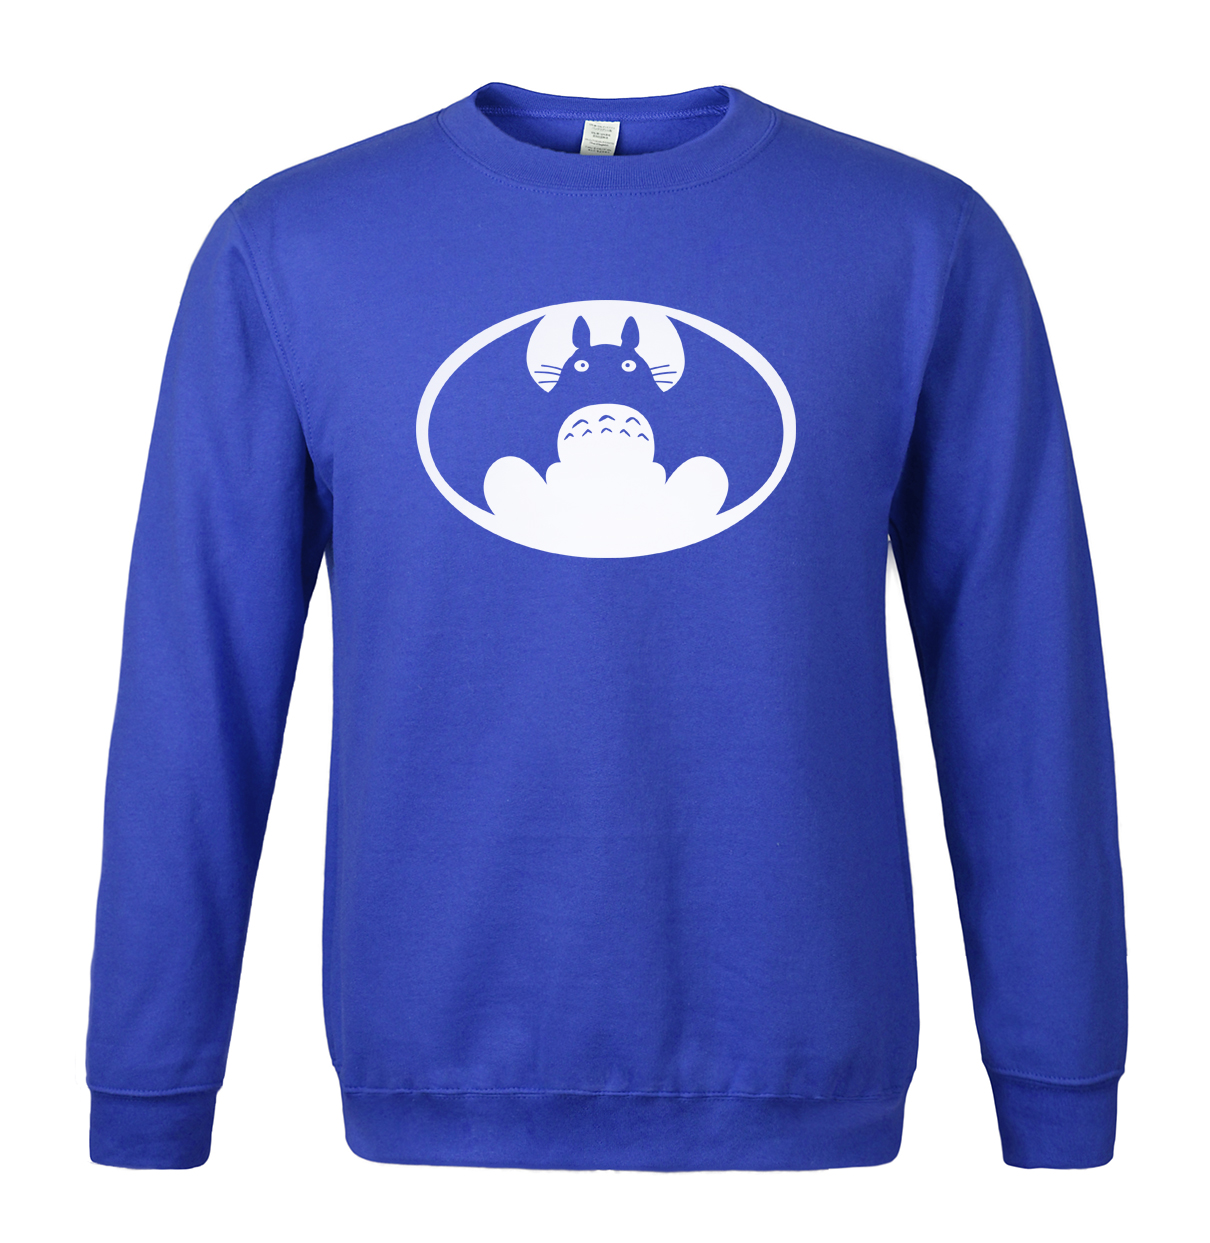 Autumn winter sweatshirt 2019 fleece hoodies men Totoro VS Batman funny print anime cartoon hoody men's sportswear tracksuits